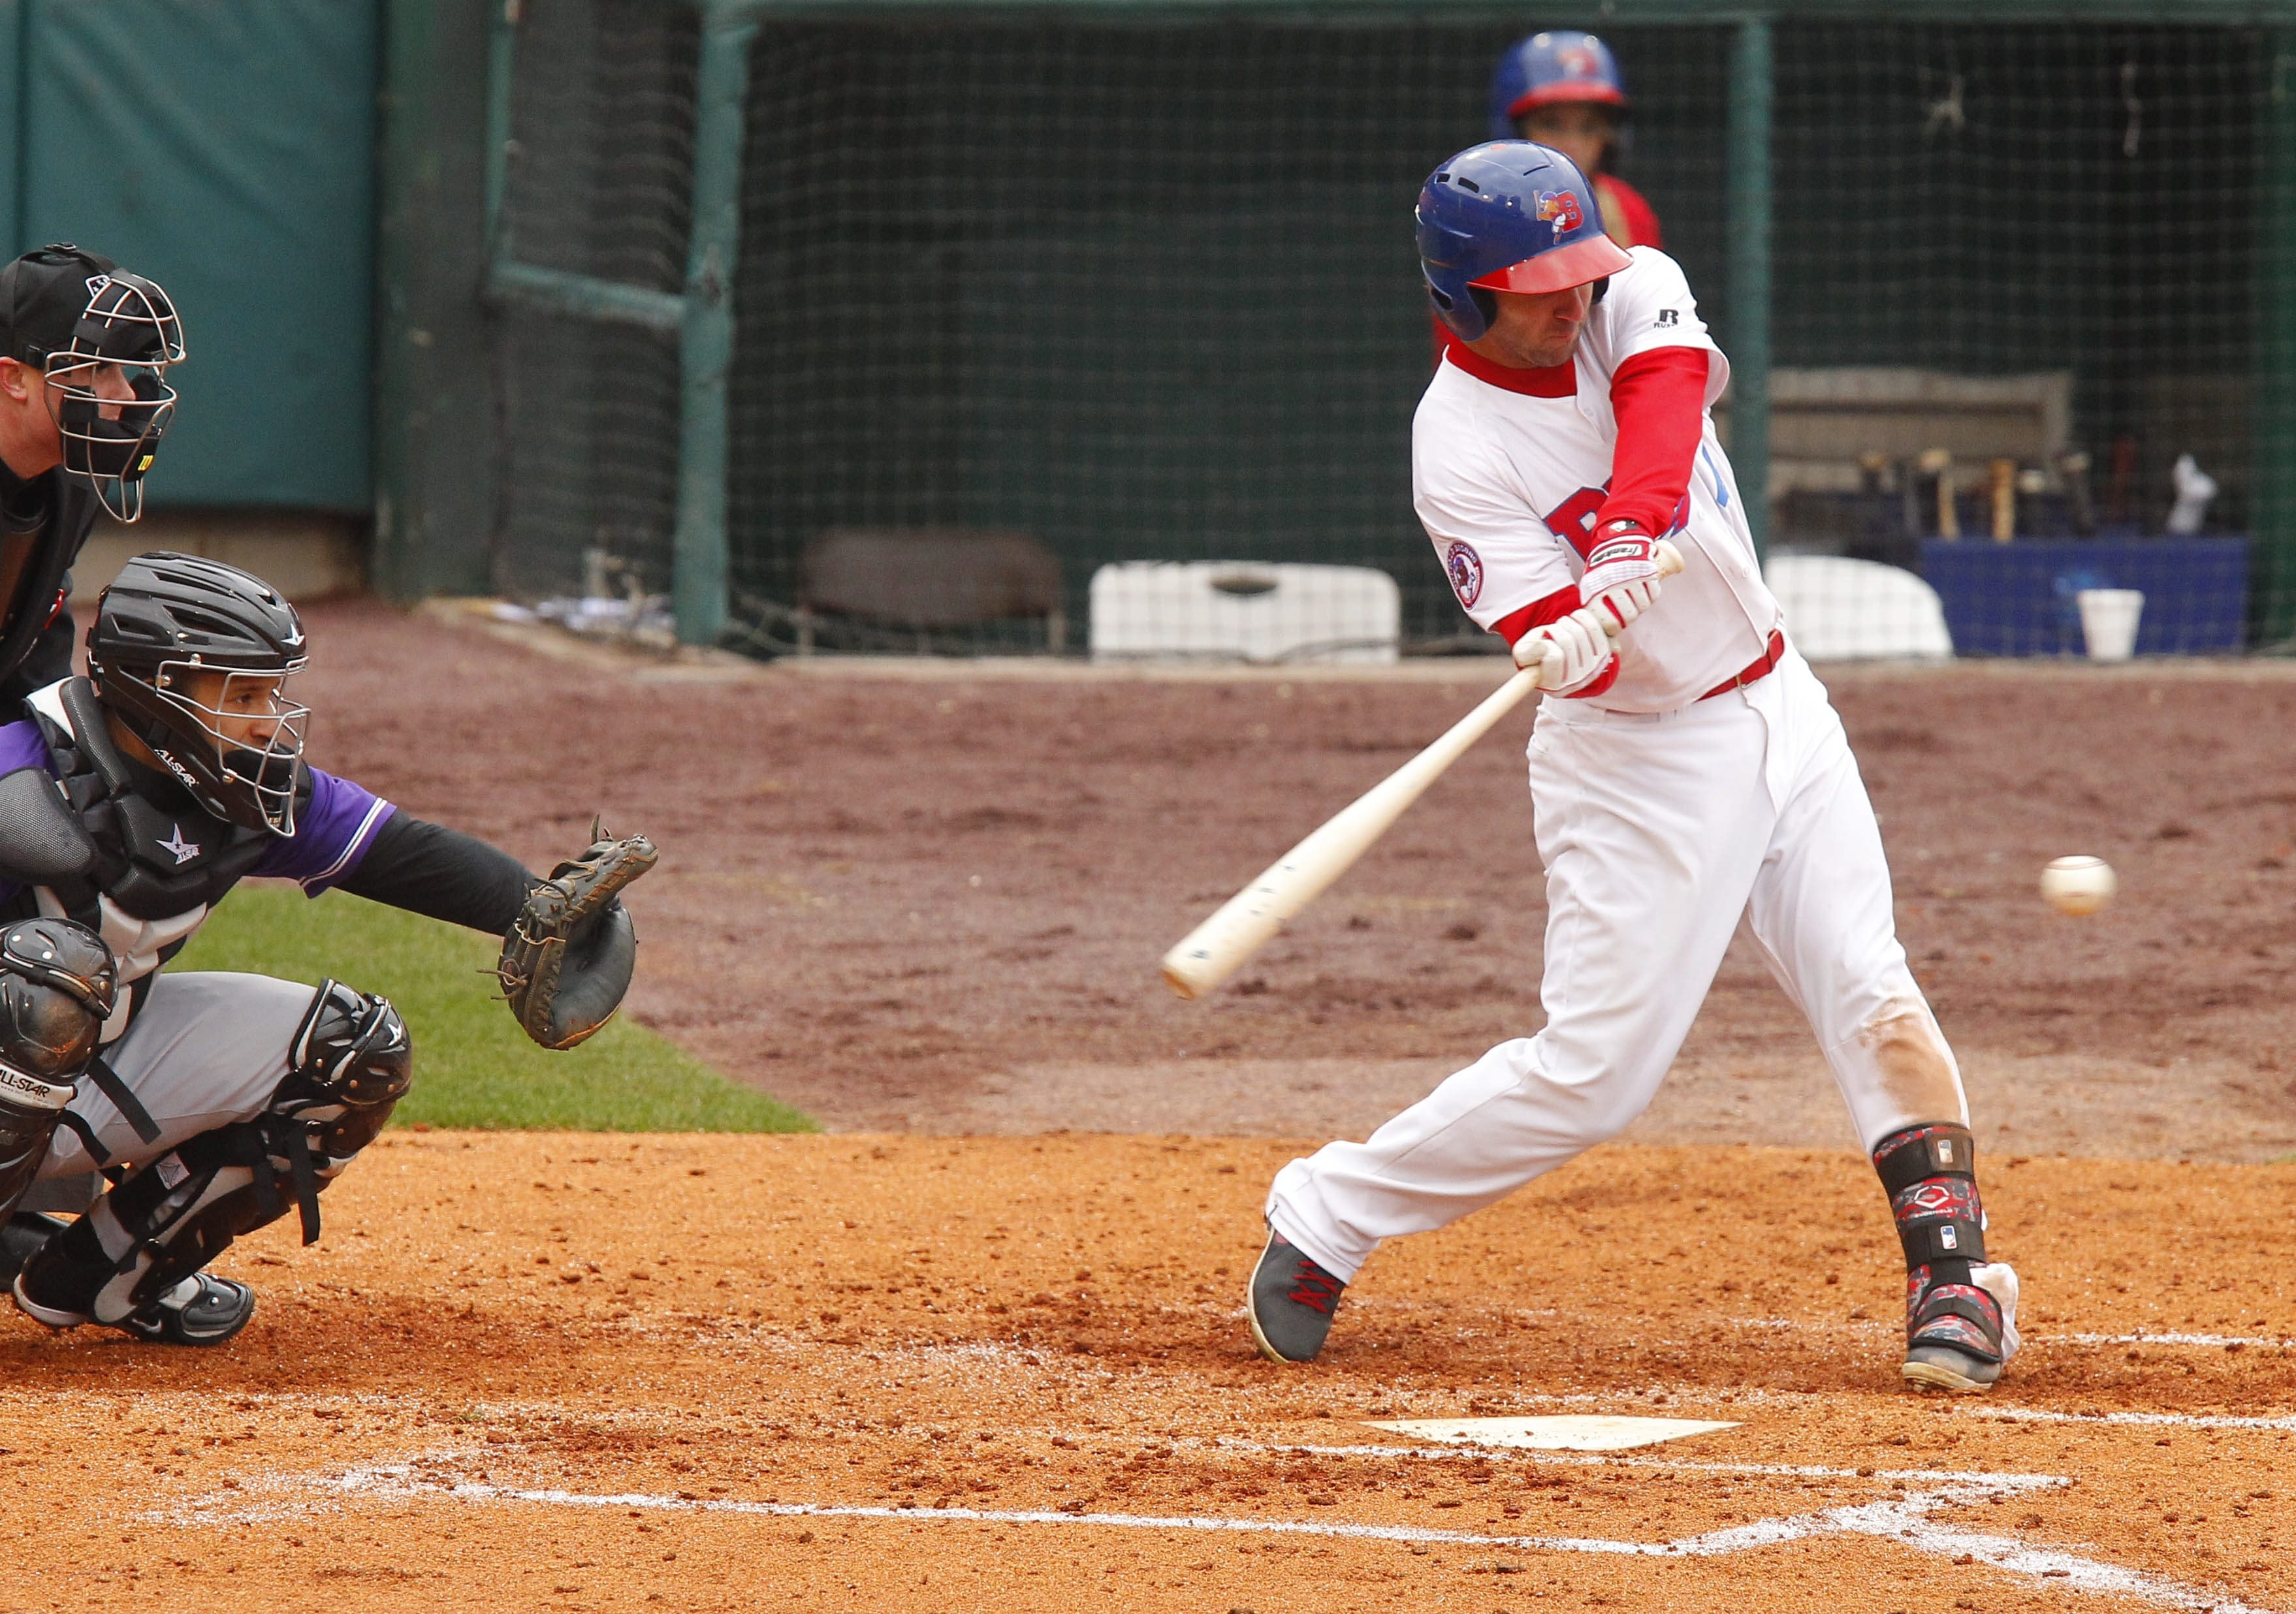 Darin Mastroianni pounds one of his two doubles in Saturday's Bisons victory.